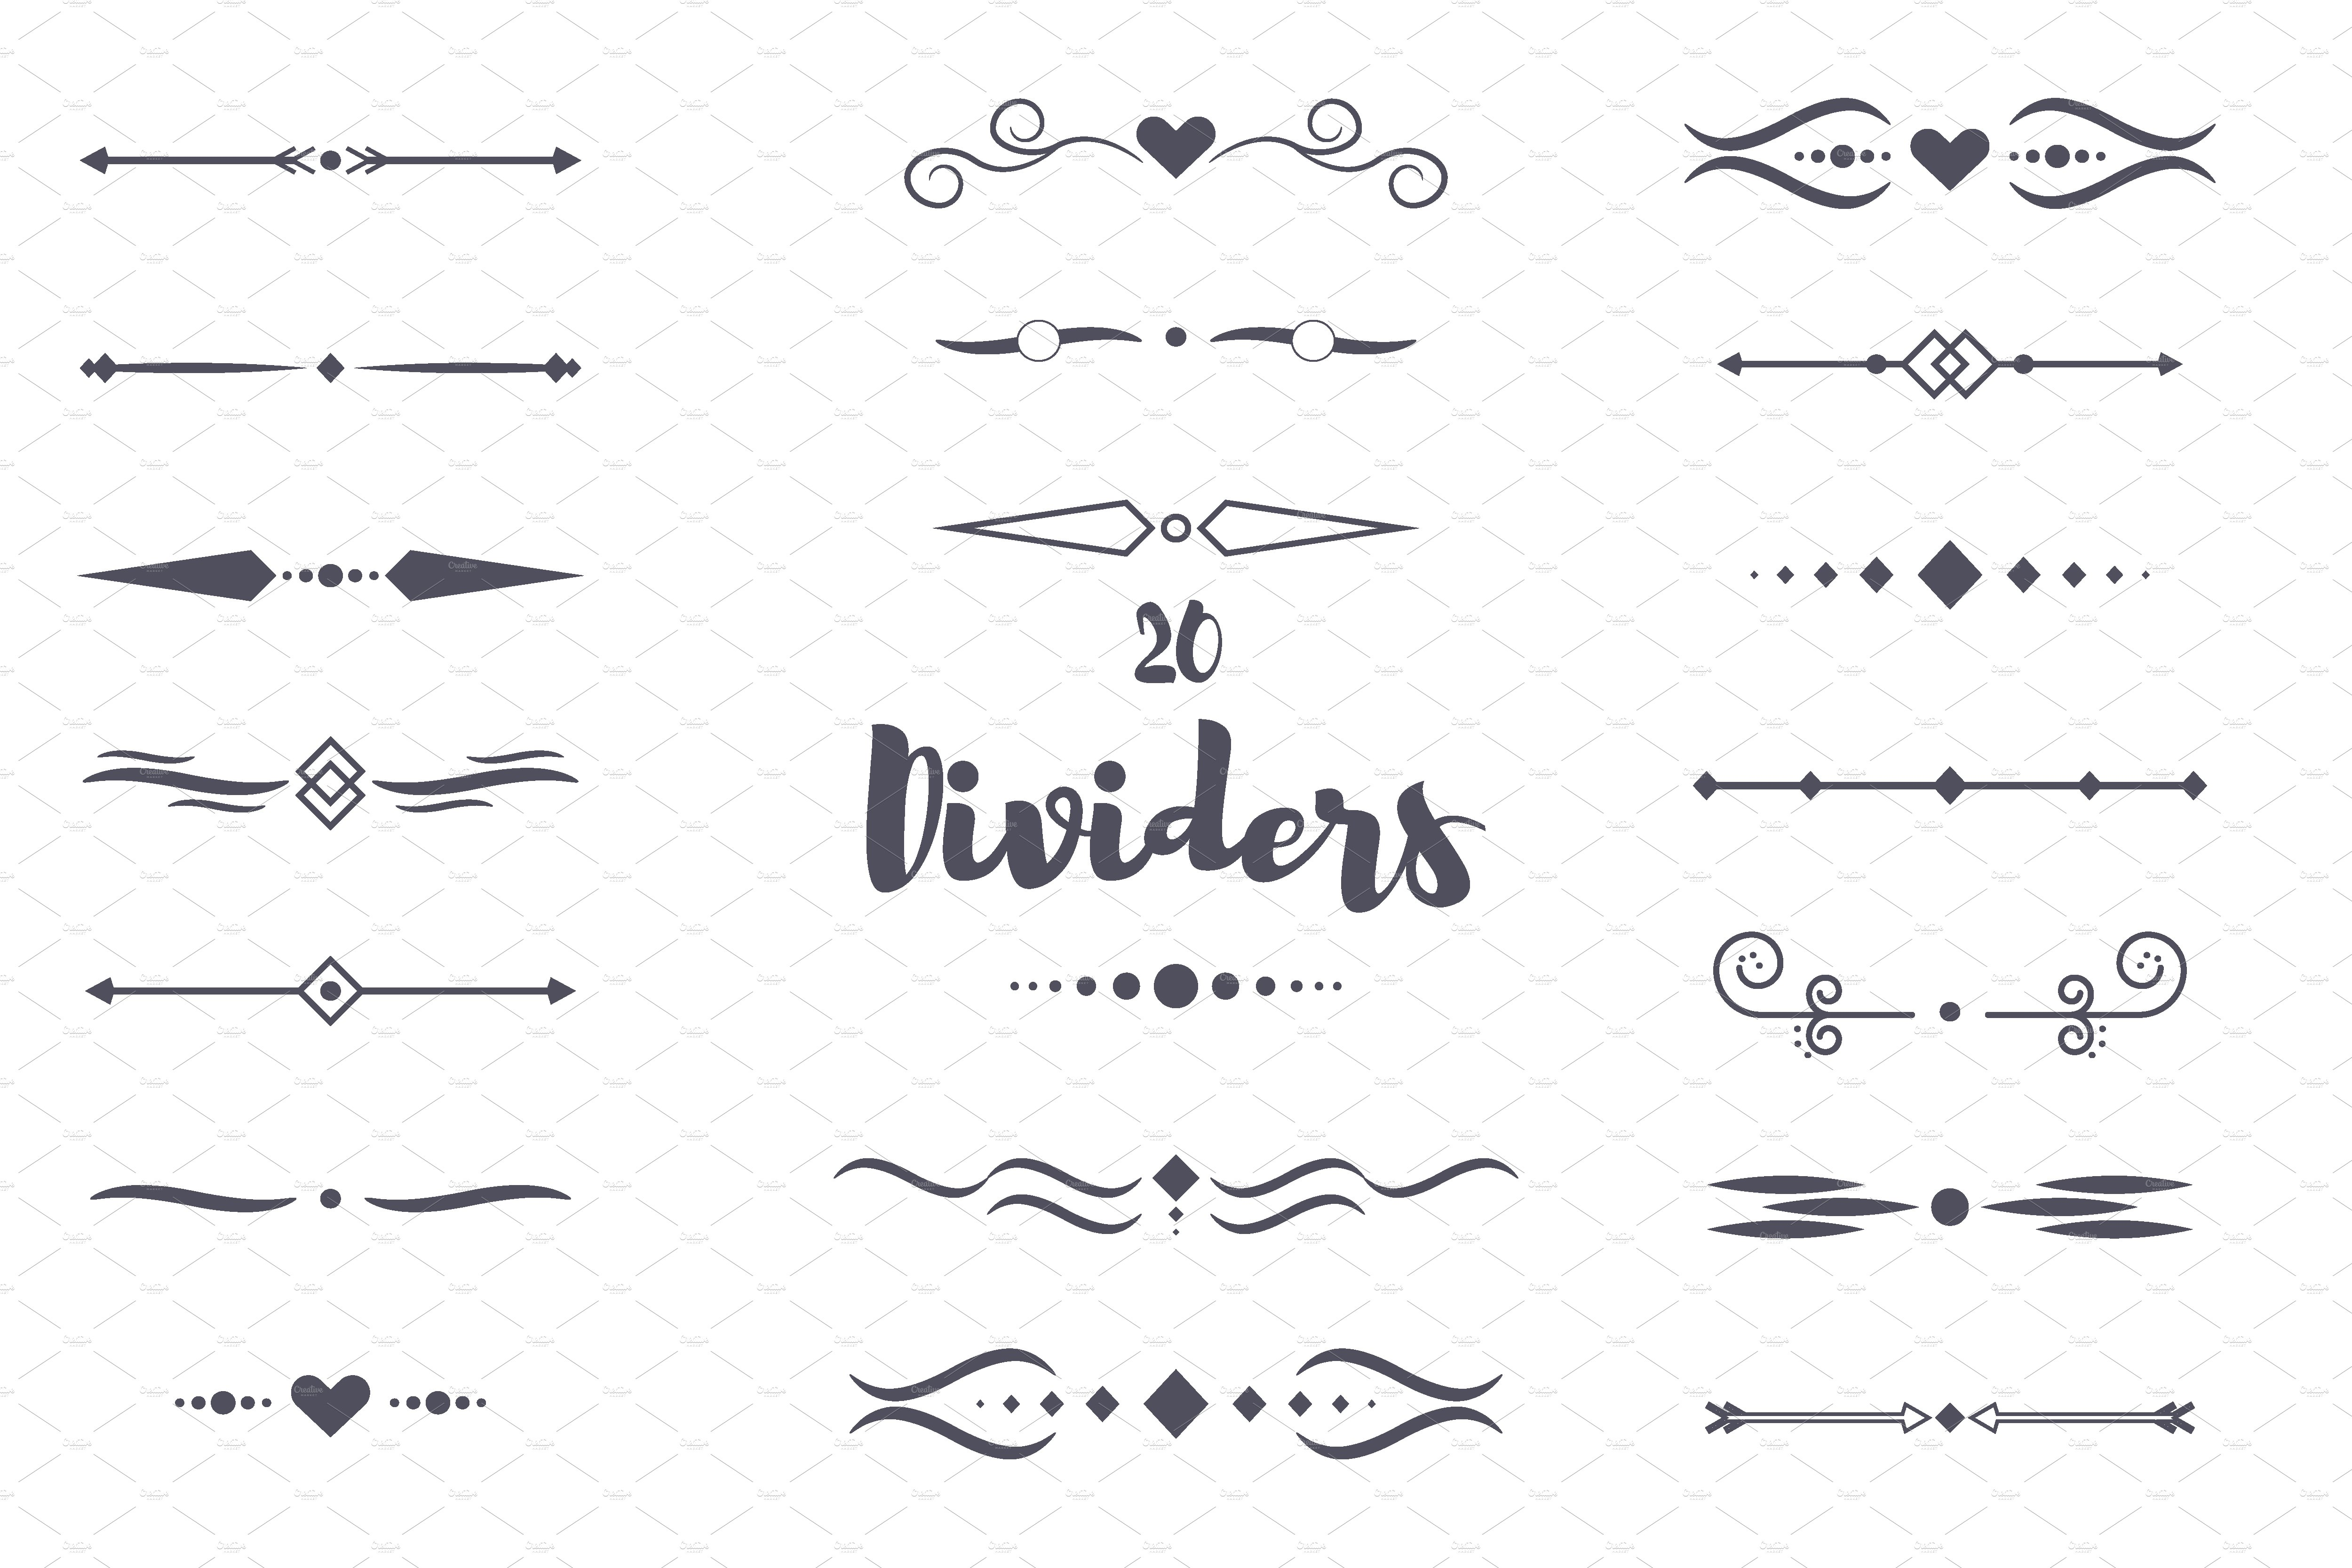 Drawing Lines For Calligraphy : Dividers calligraphic style illustrations creative